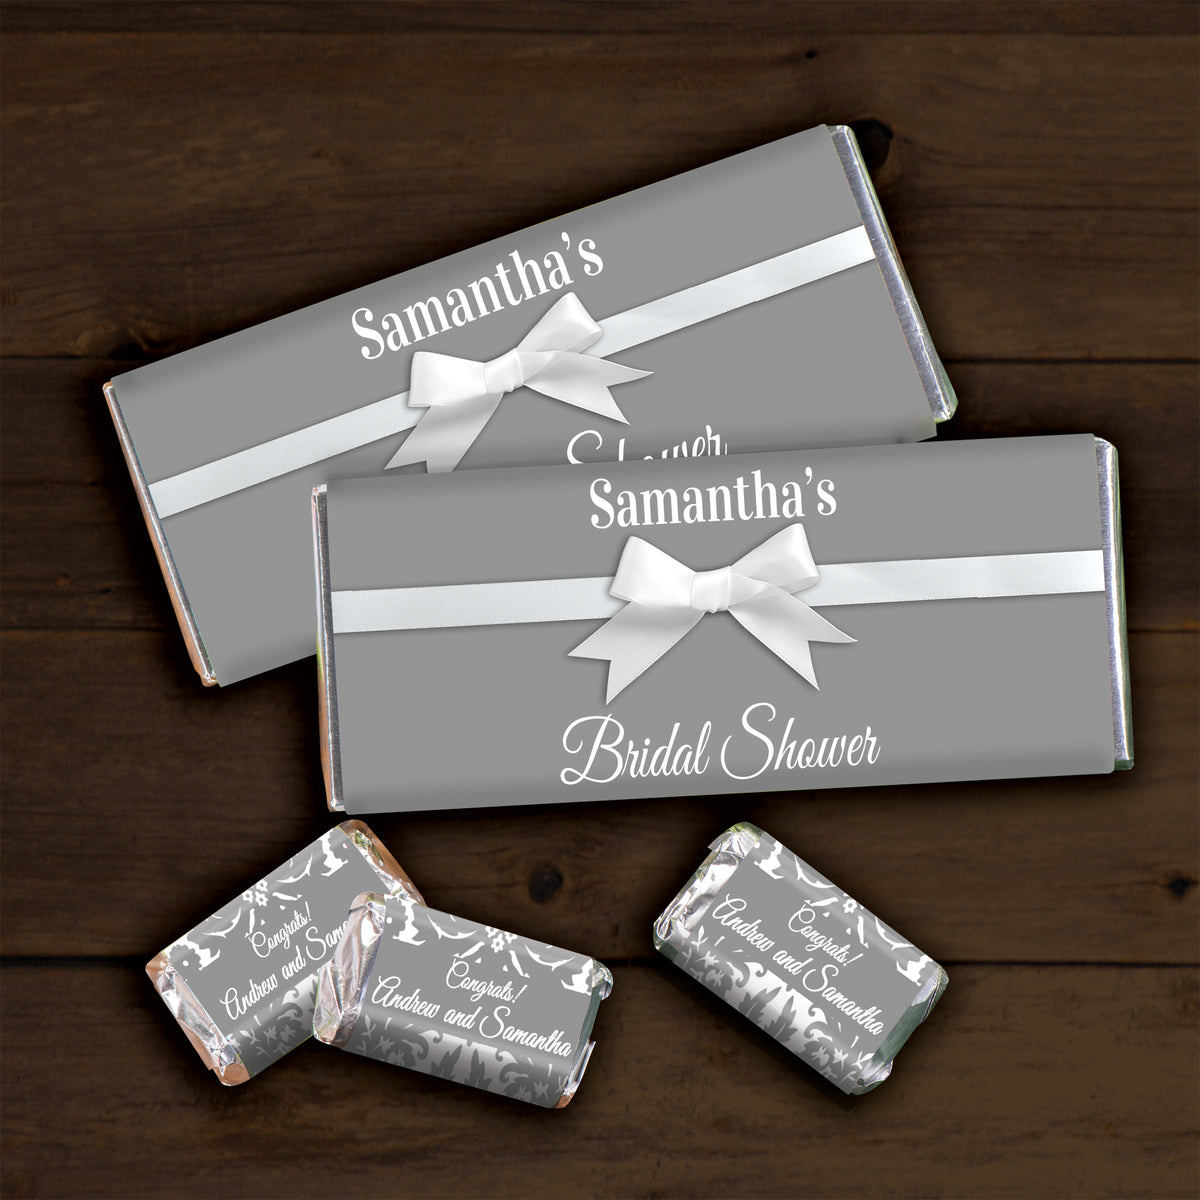 Hershey's Chocolate Cheers to You Gold Personalized Candy Bars